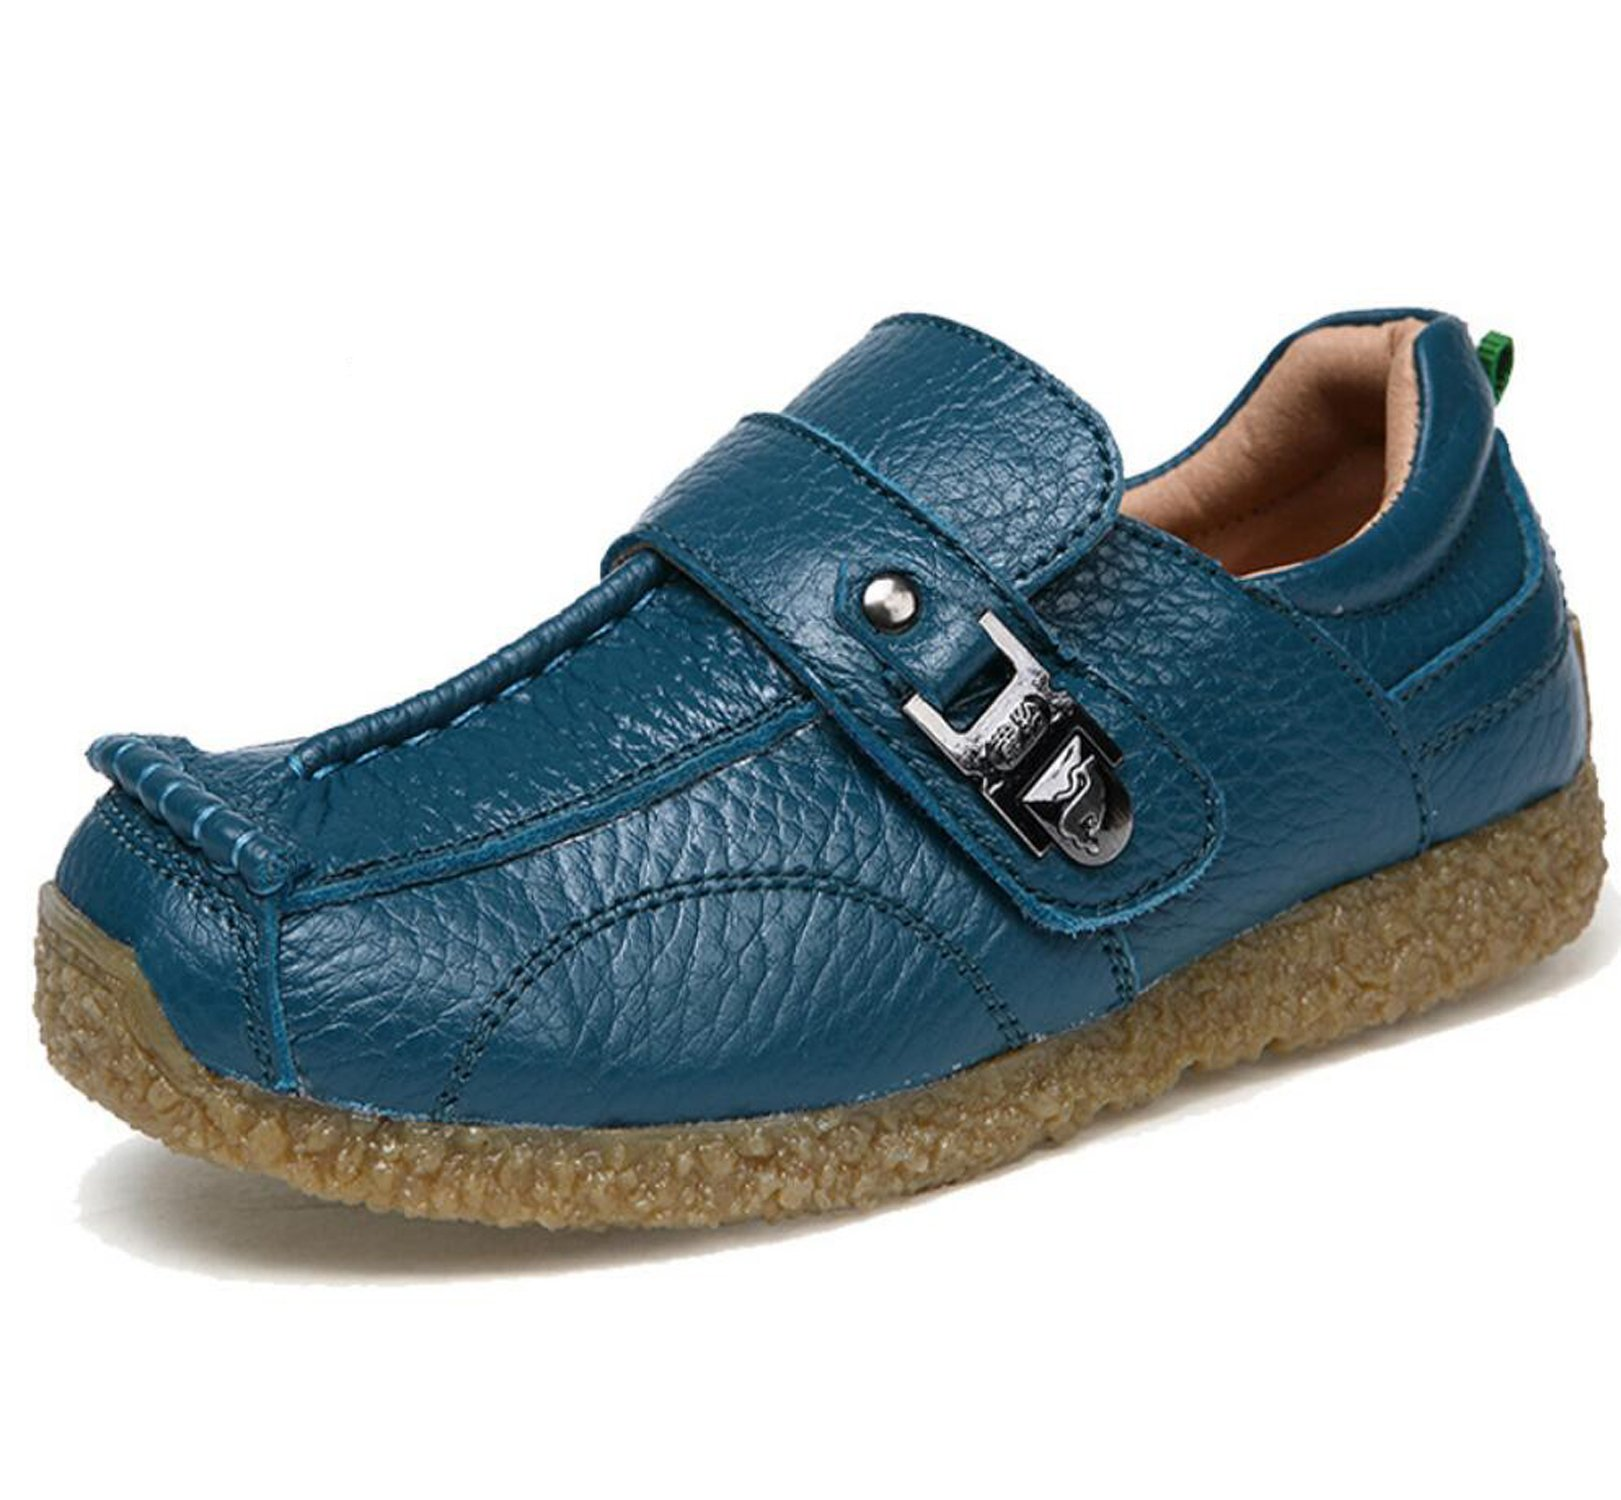 Otamise Boys Genuine Leather Loafers Slip On Boat Shoes Casual Flats School Shoes (Toddler/Little Kid/Big Kid) Blue US 13M